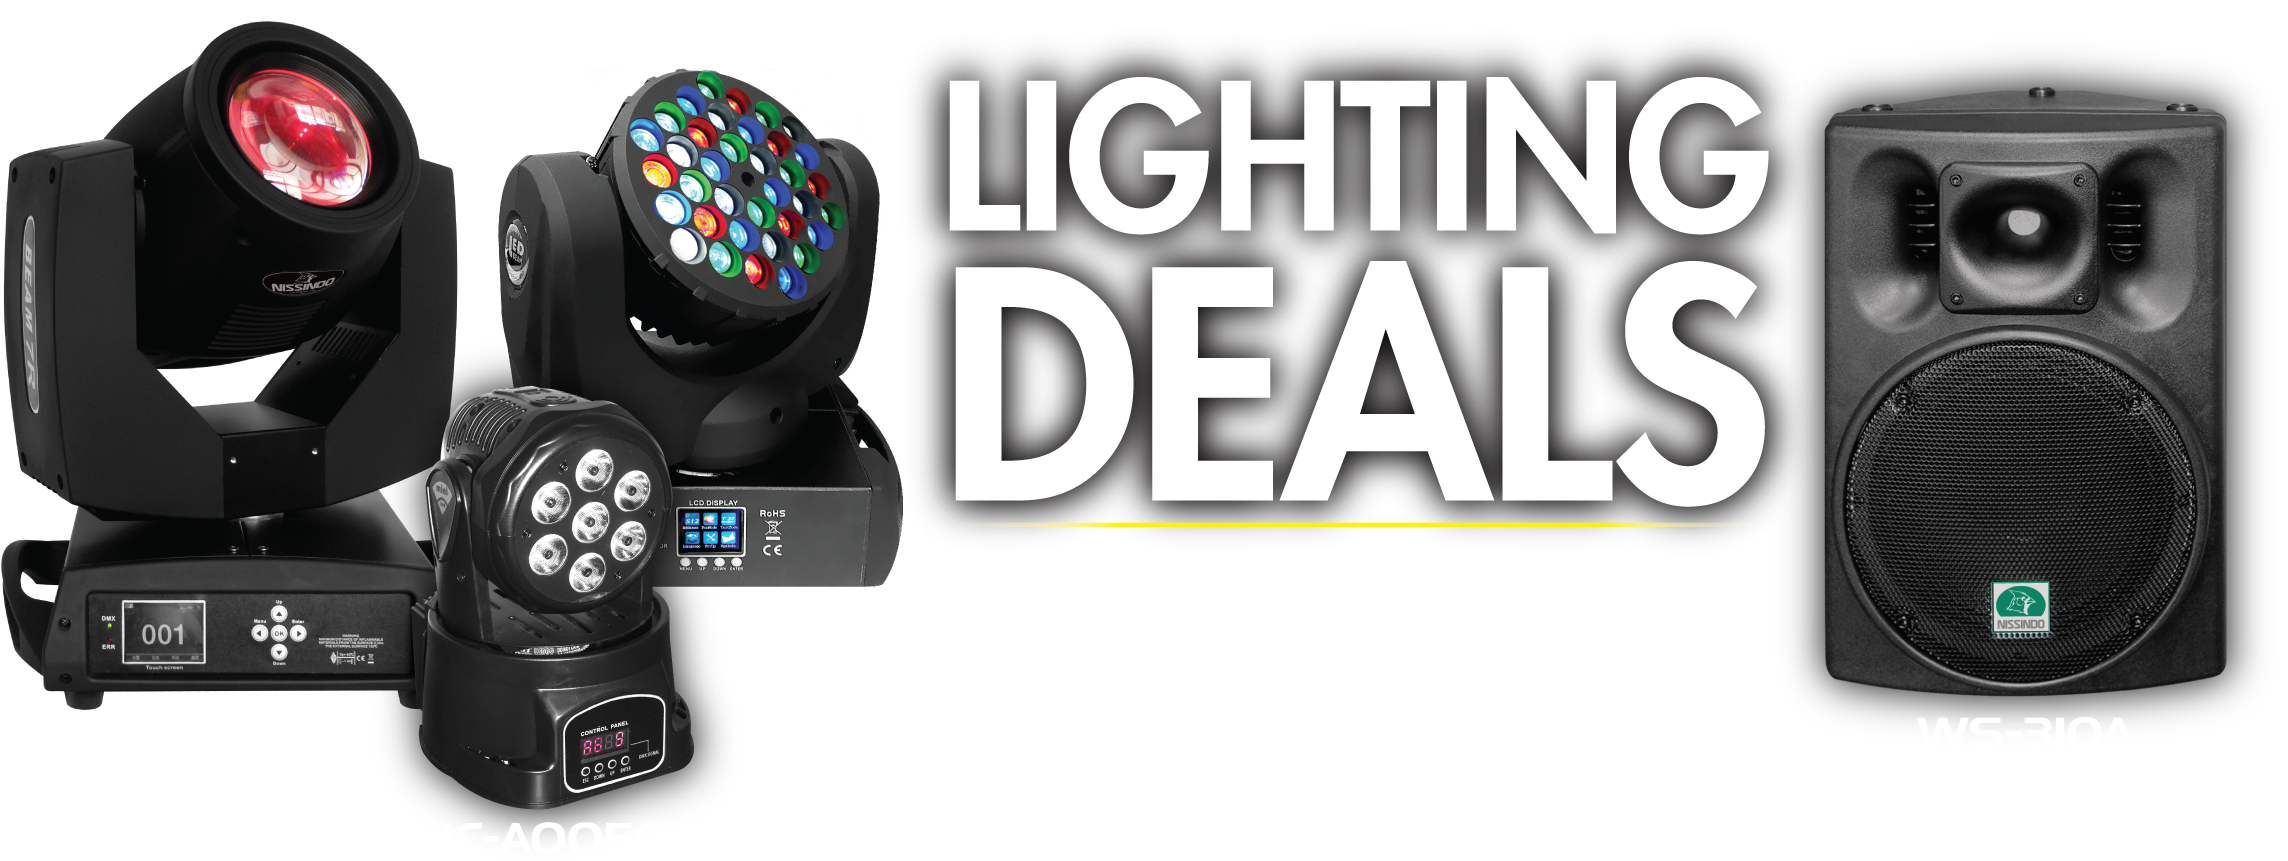 Light Deals